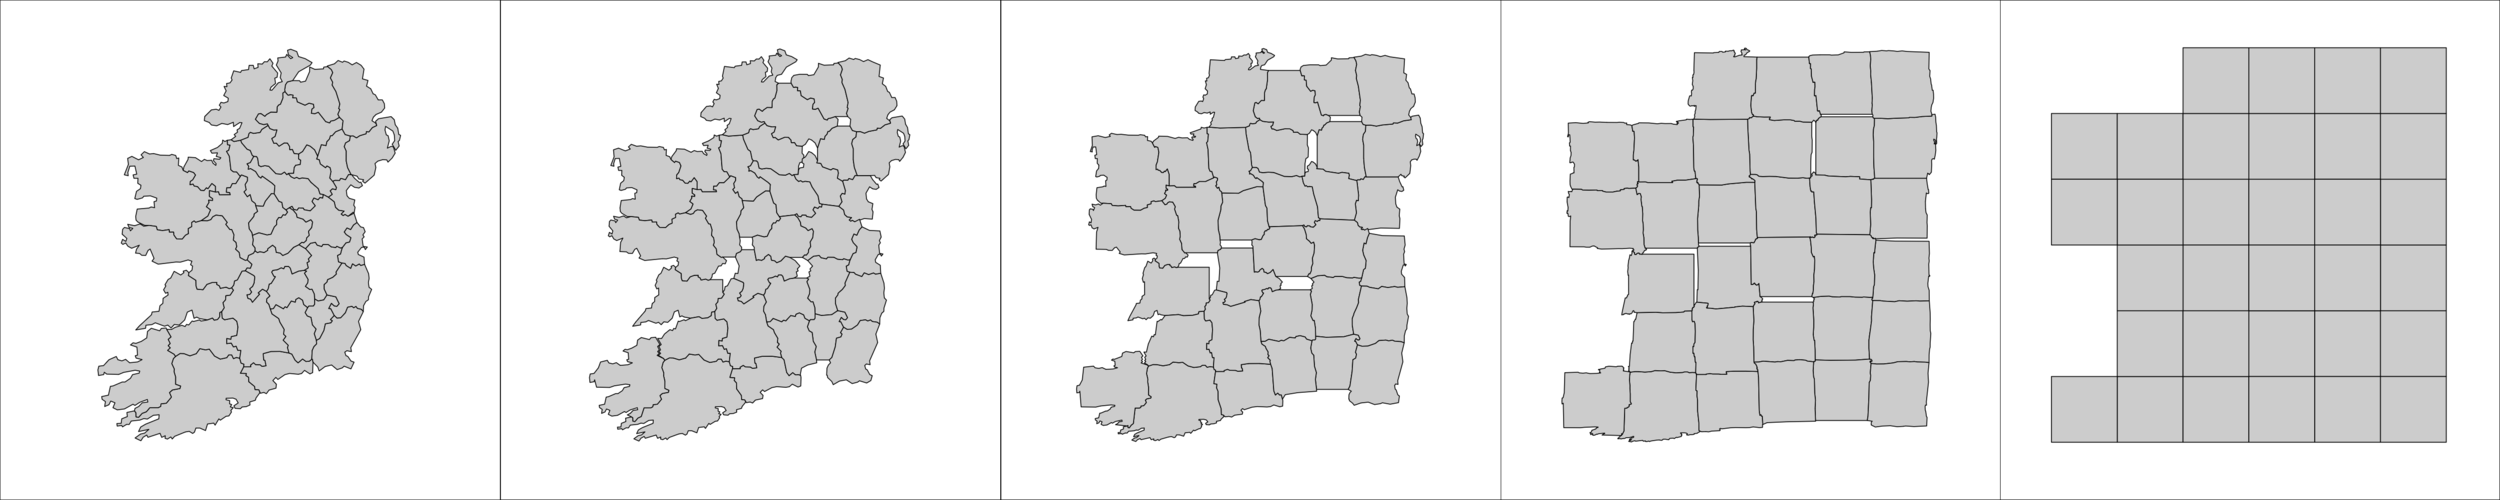 Smooth morphing from a geographic map of historical Irish counties to a small multiple with (few) gaps.